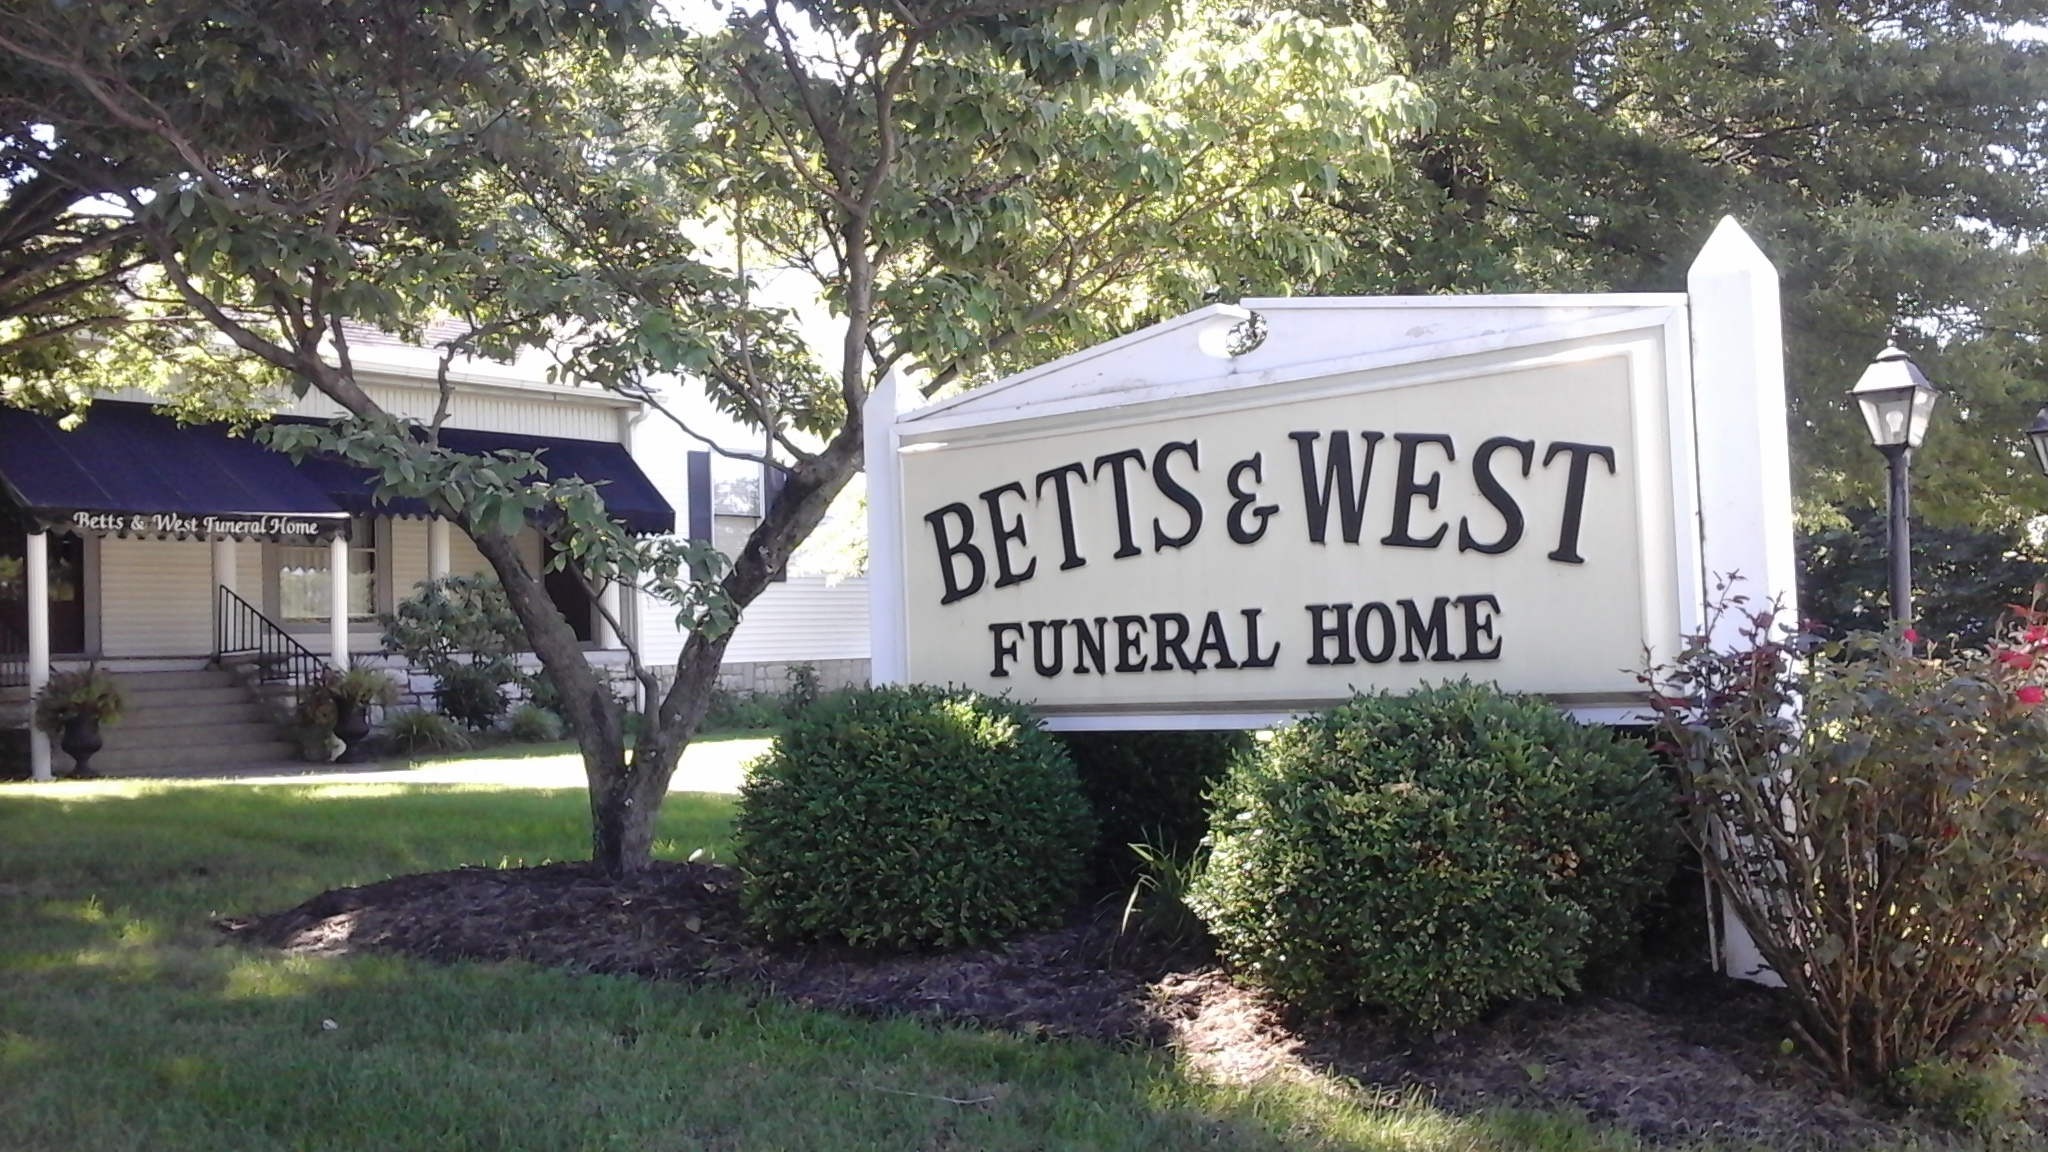 Betts & West Funeral Home image 2